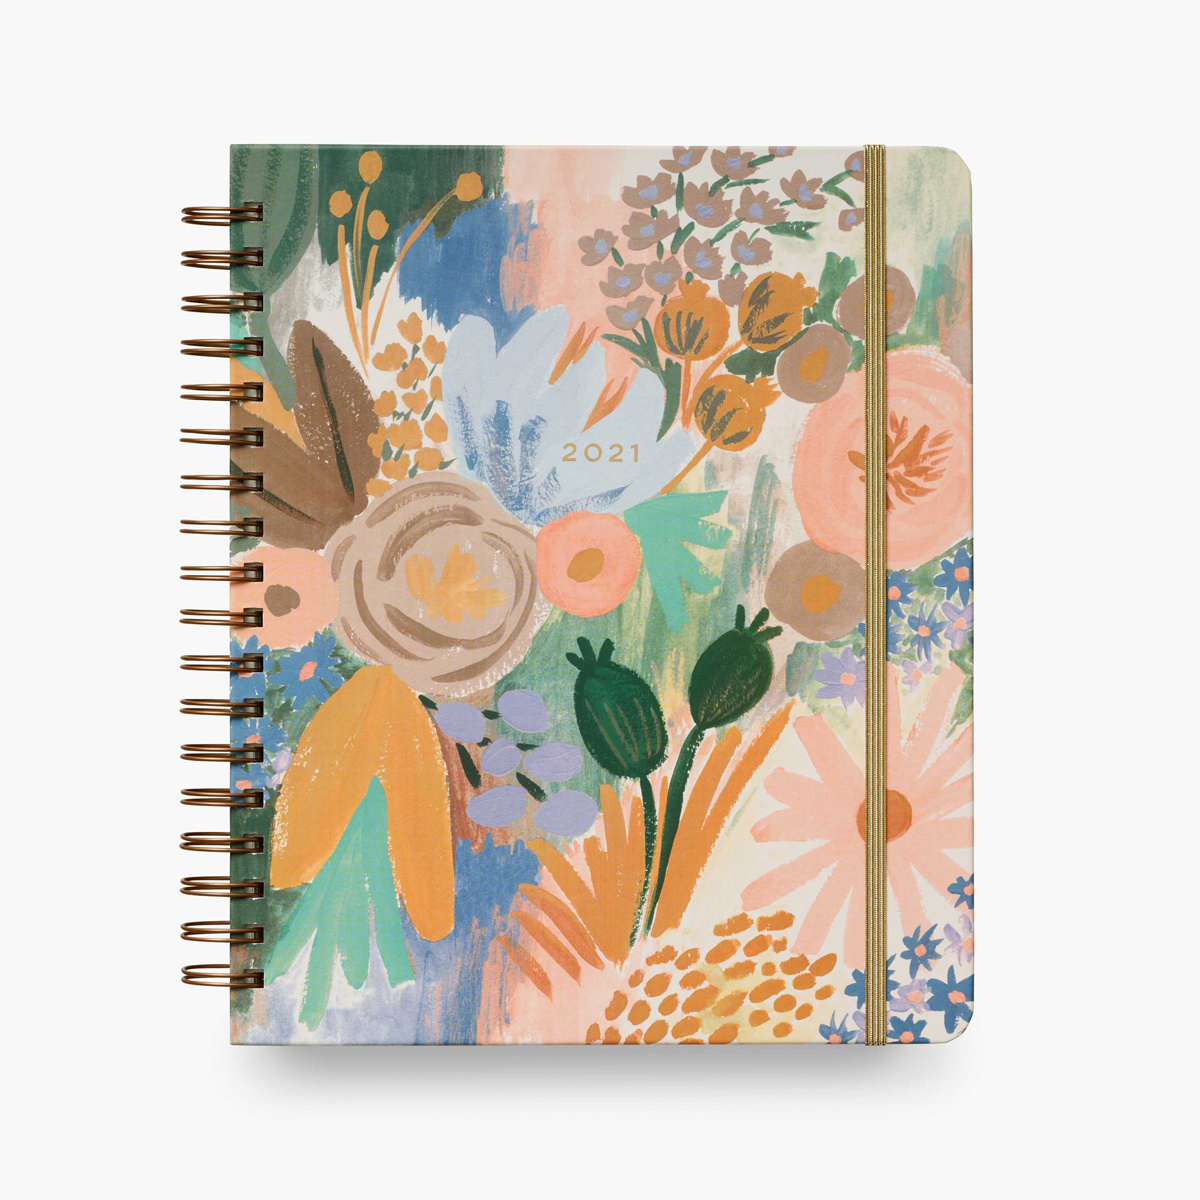 Rifle Paper Co. 2021 Luisa Hardcover Spiral 17 Month Planner